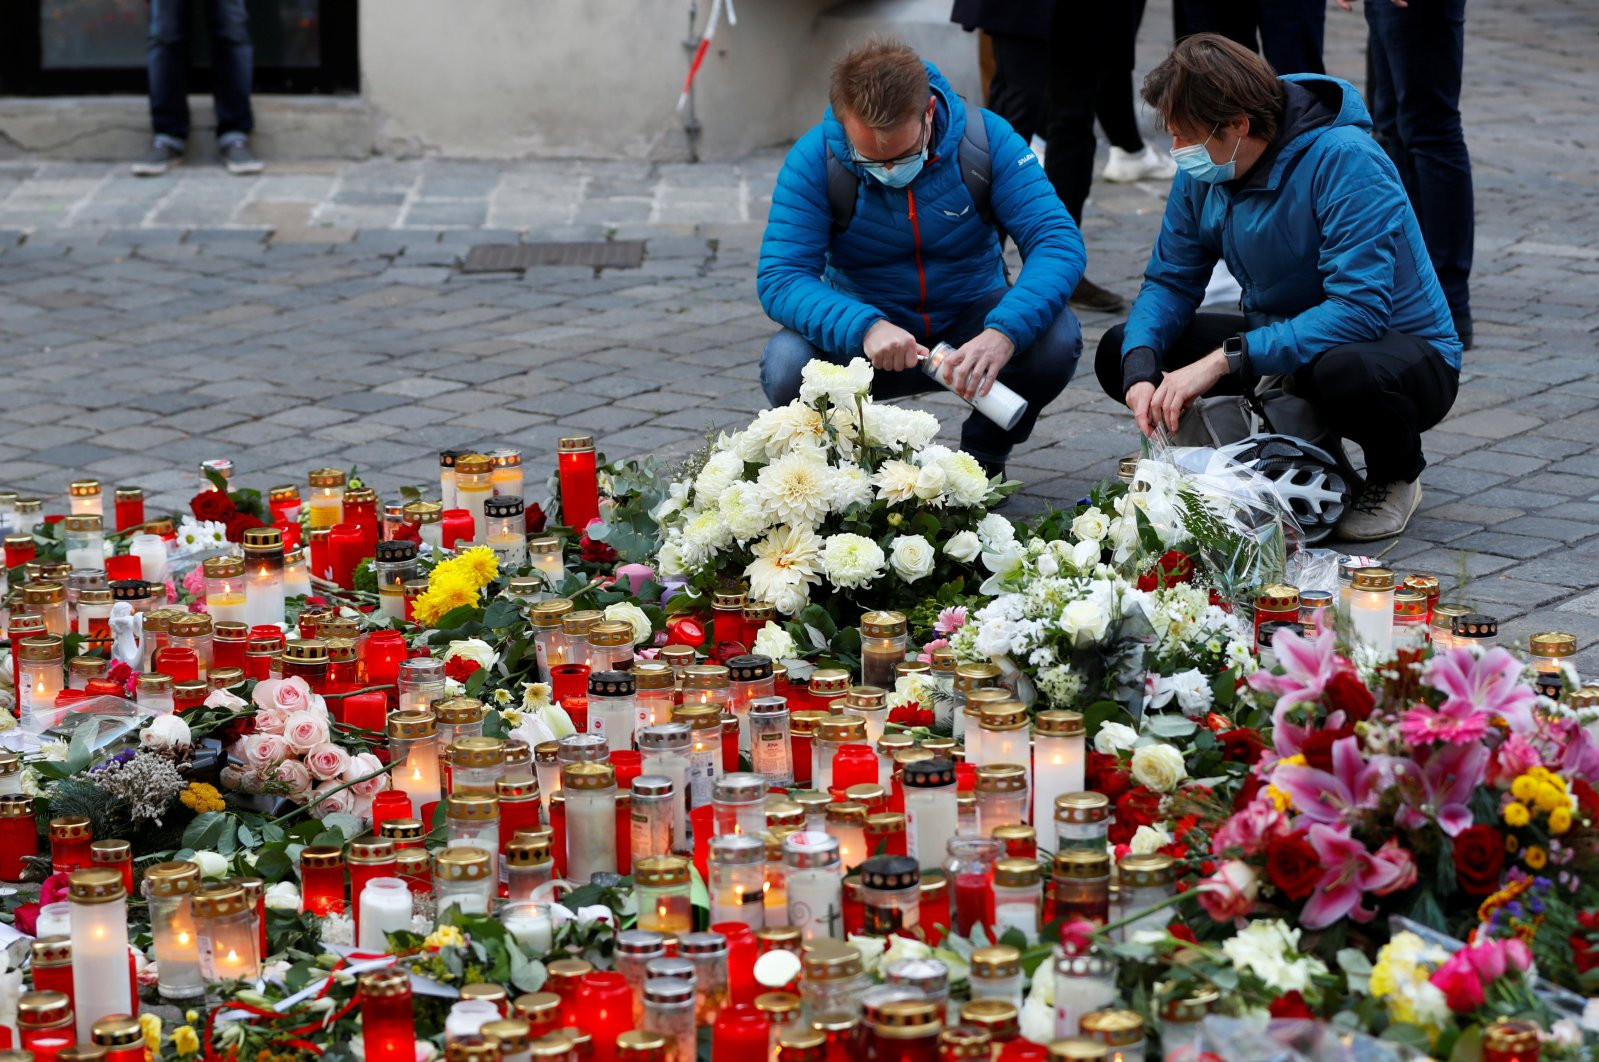 People pay their respects at the site of the Daesh terrorist attack in Vienna, Austria, Nov. 5, 2020. (Reuters Photo)